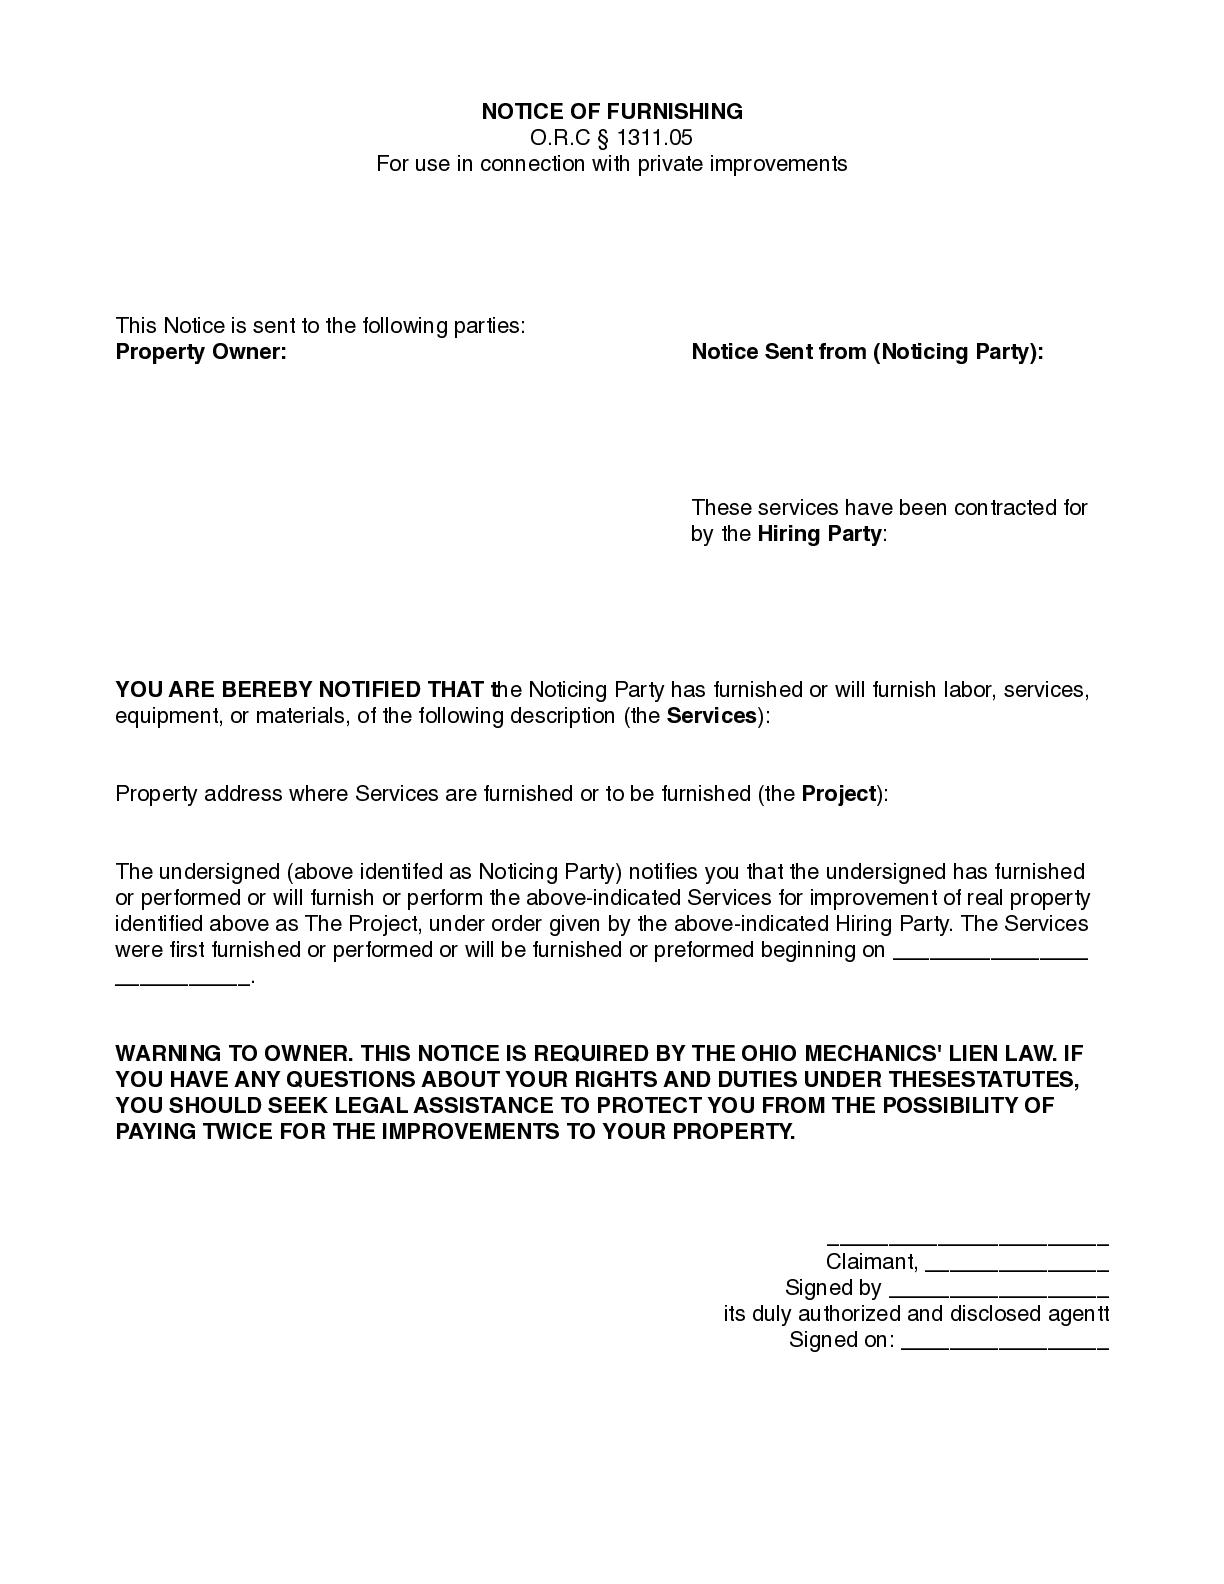 Ohio Notice of Furnishing Form (private projects)